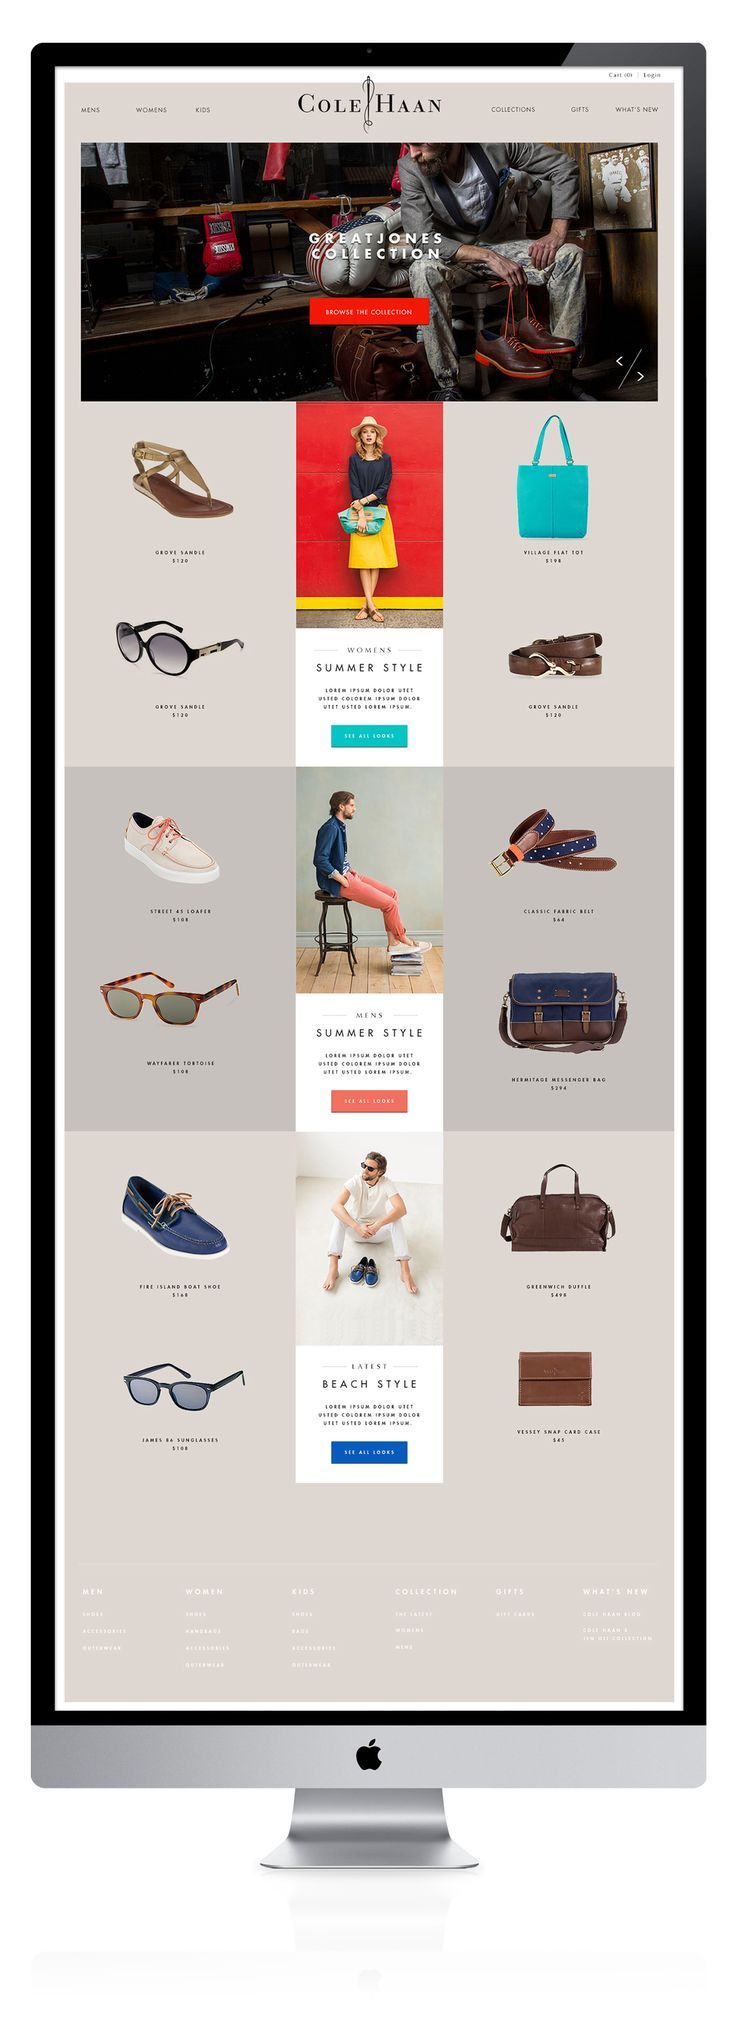 Cole Haan by Joshua Long < repinned by kalypso - web & mobile design   Take a look at http://kalypso.es/ >